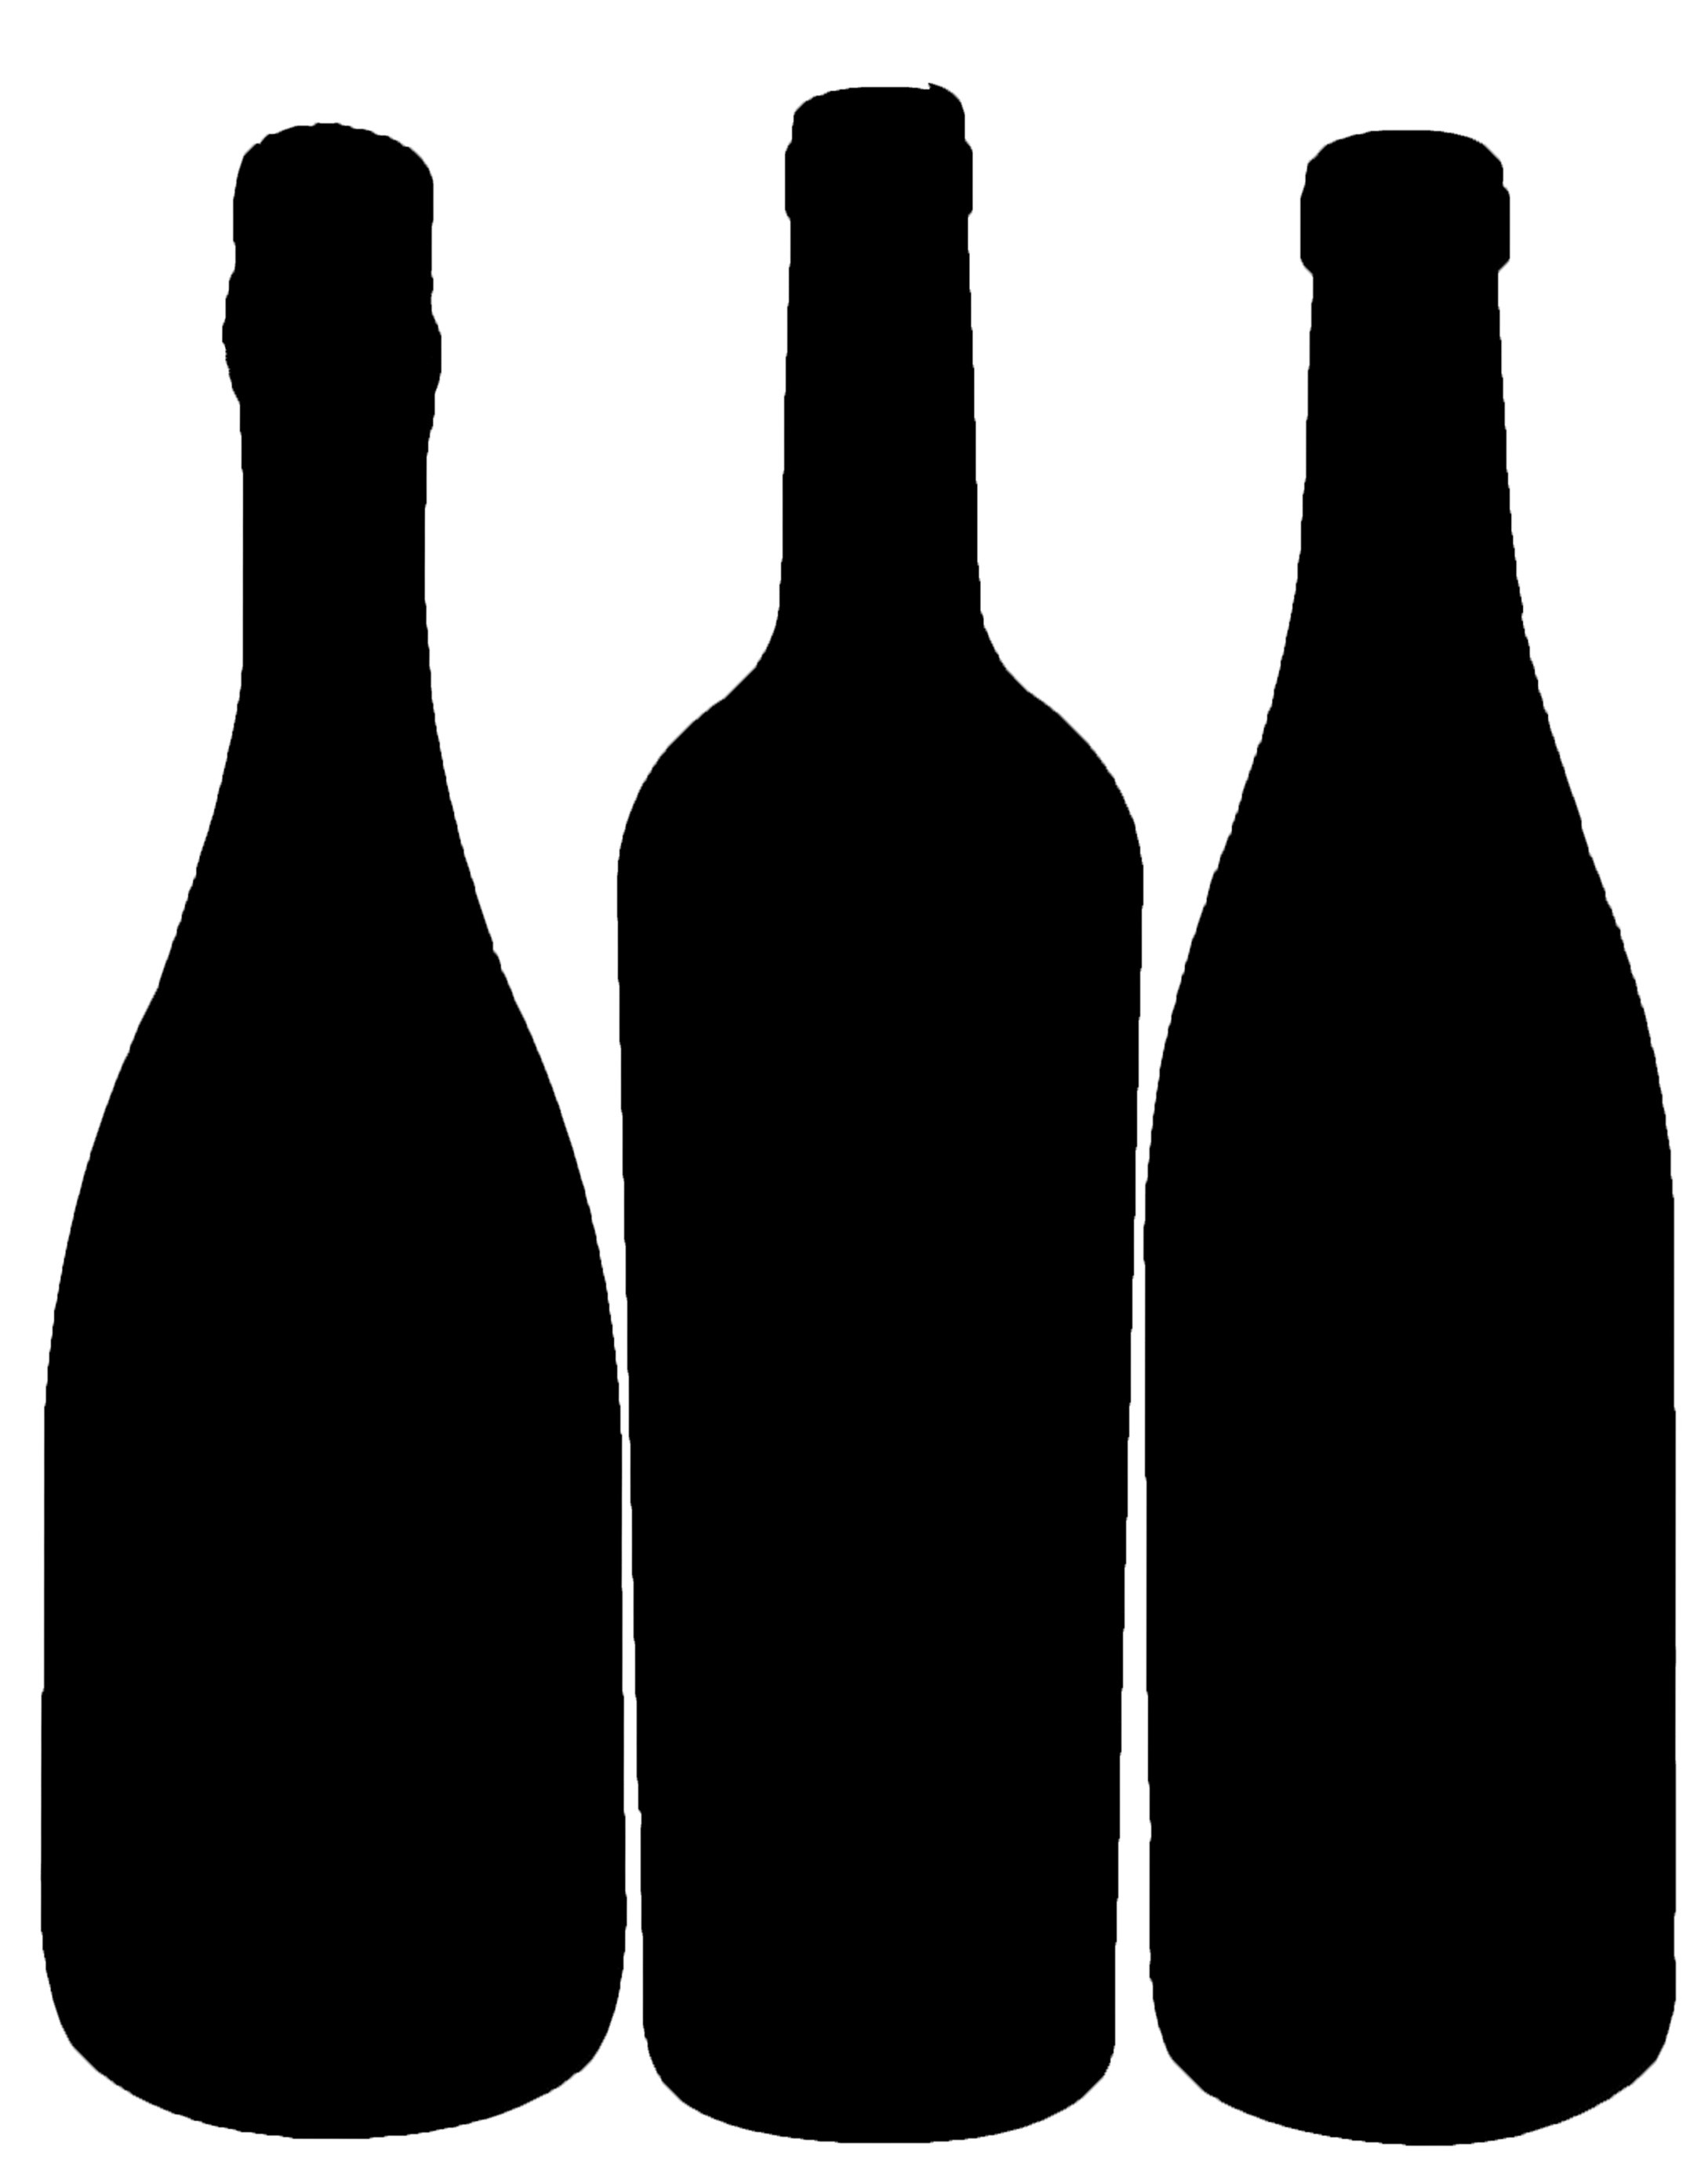 2178x2774 Wine And Liquor Bottles Clipart